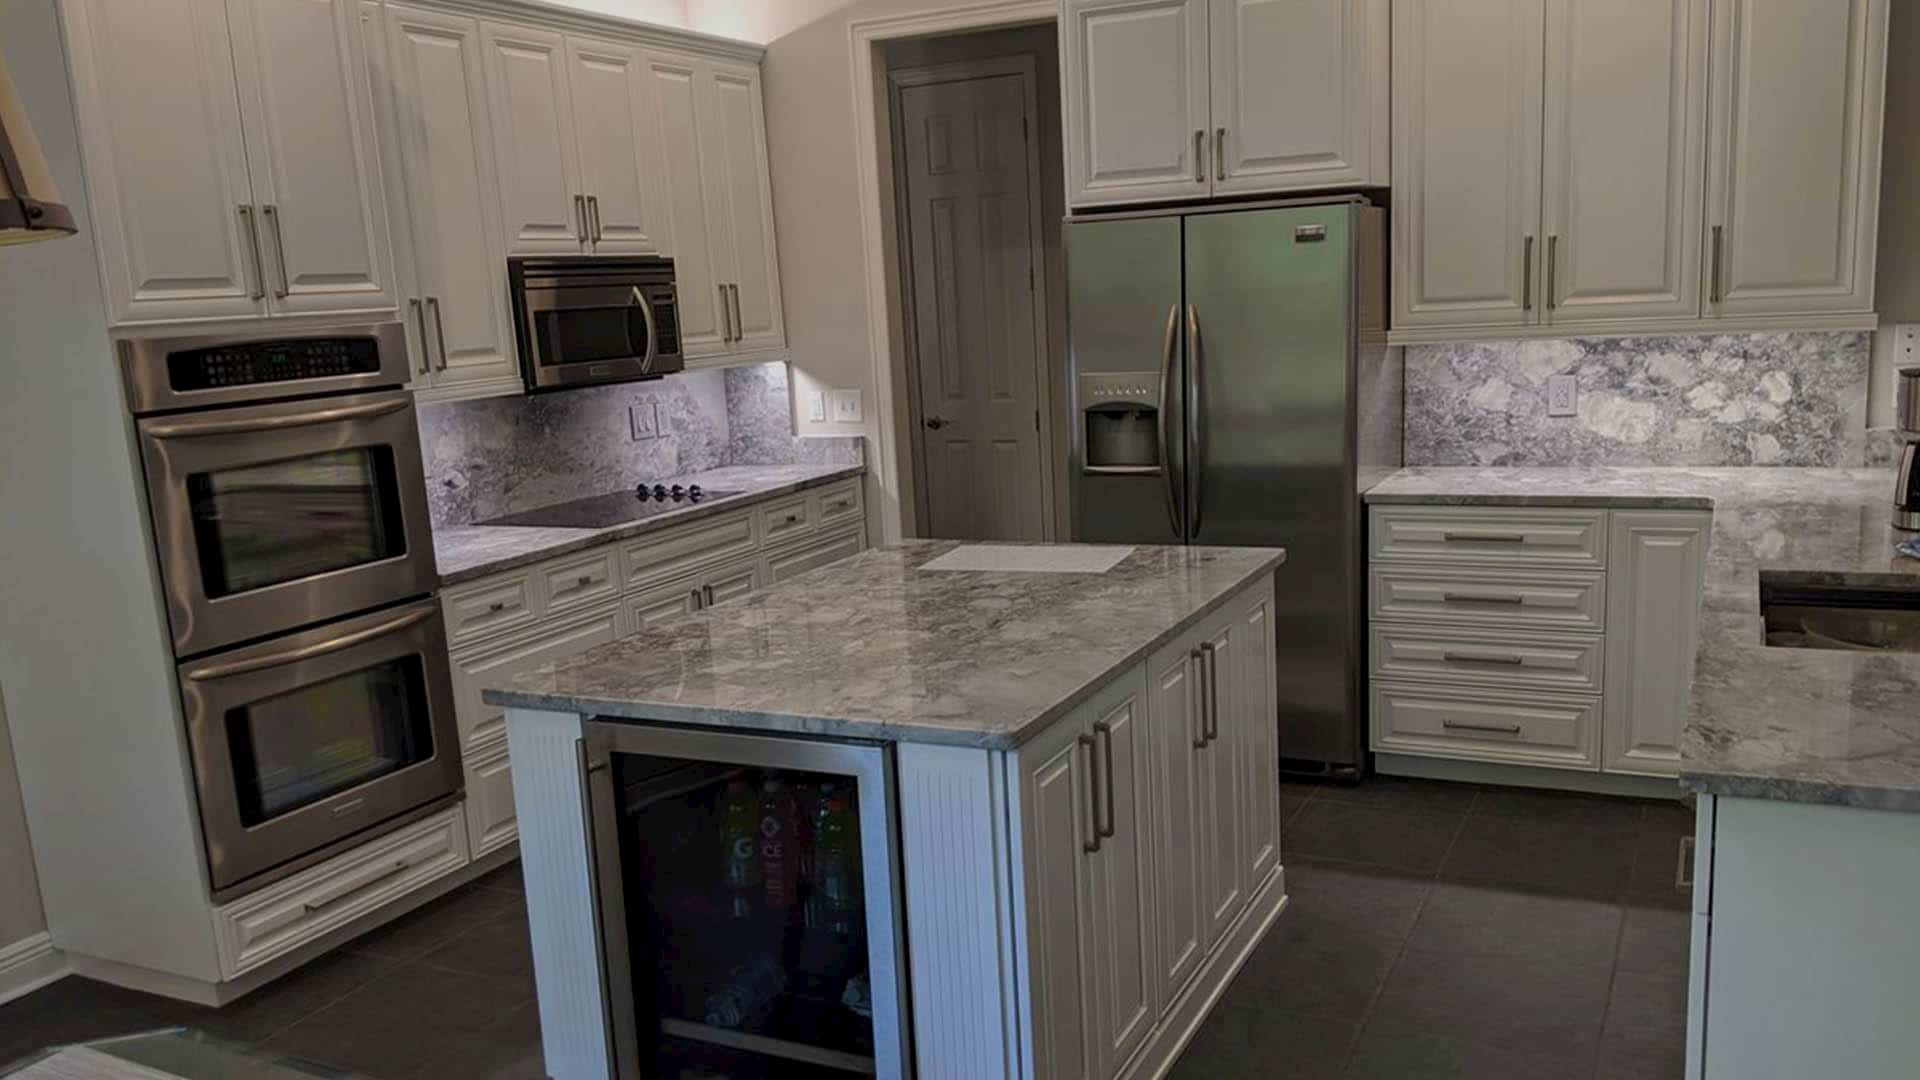 Tampa Bay Cabinet Painting Refinishing Kitchen Cabinets Wood Staining In Dunedin Fl